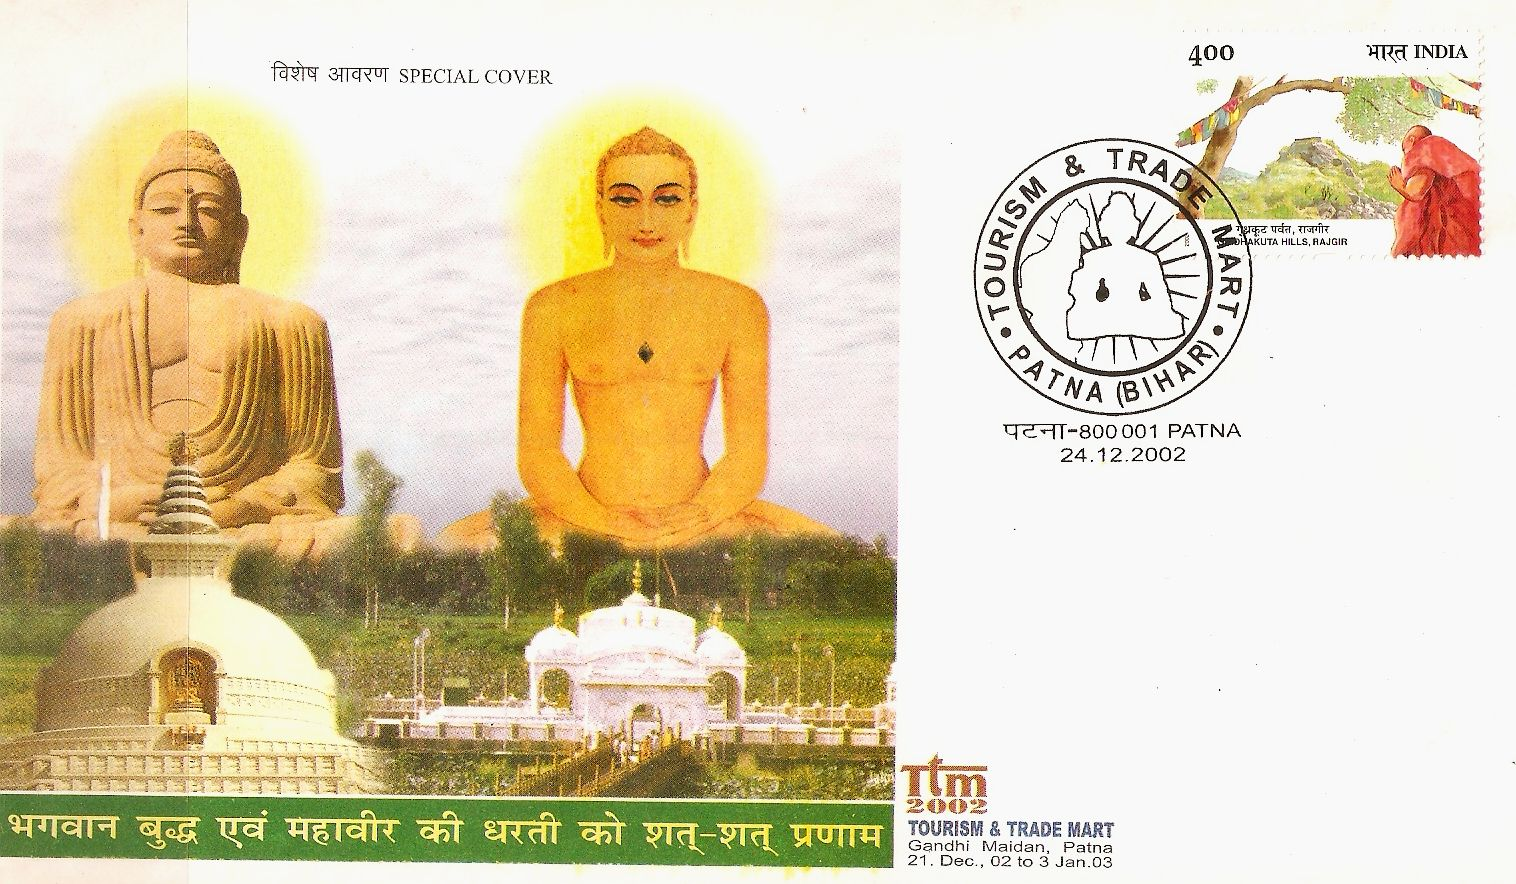 jainism articles and essays special cover on buddha and mahavira a special postal cover in memory of gautam buddha and teerthankar mahavir published by post at patna bihar